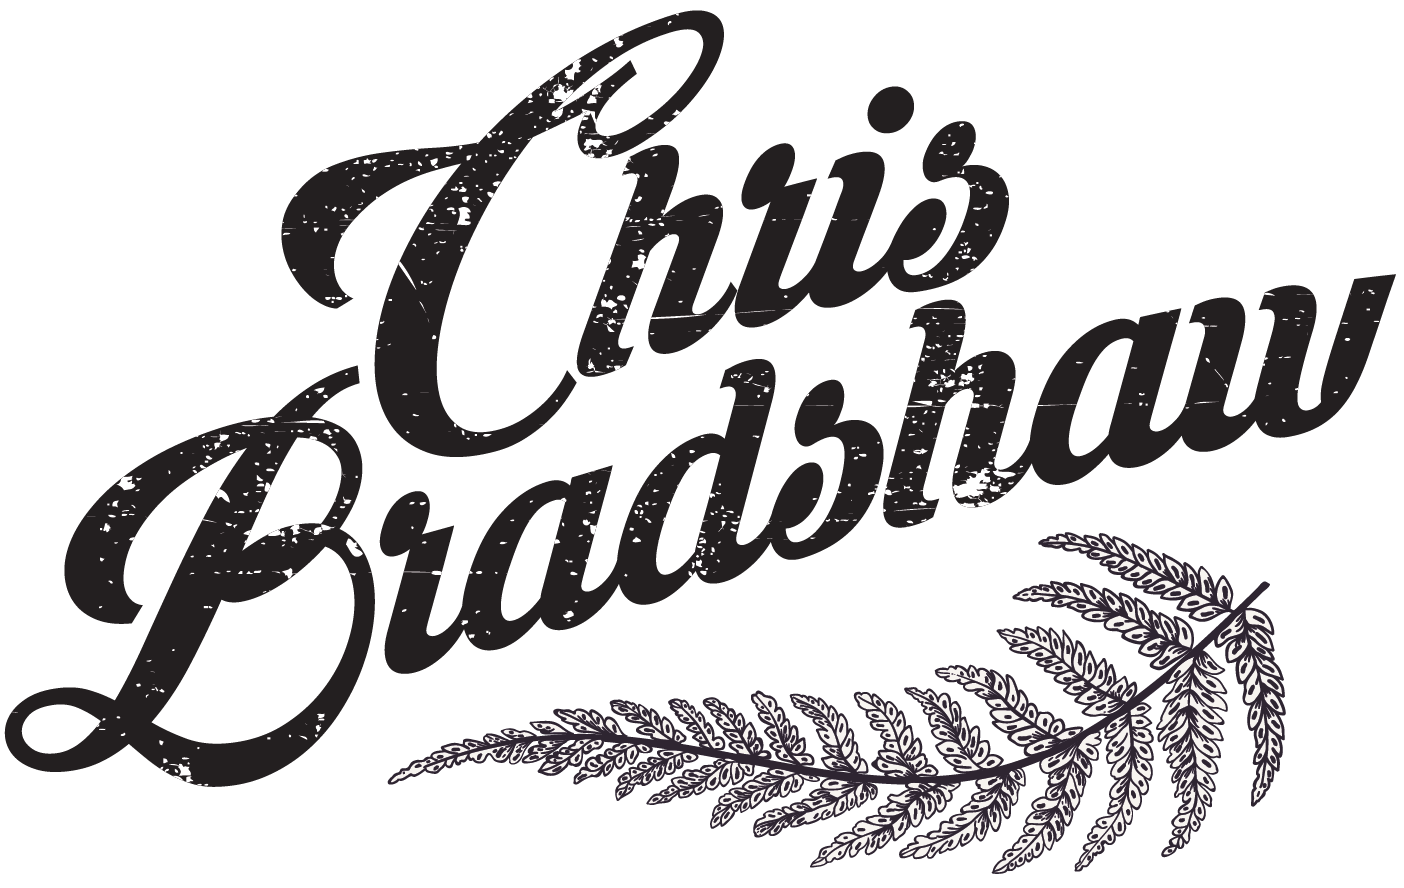 Chris Bradshaw